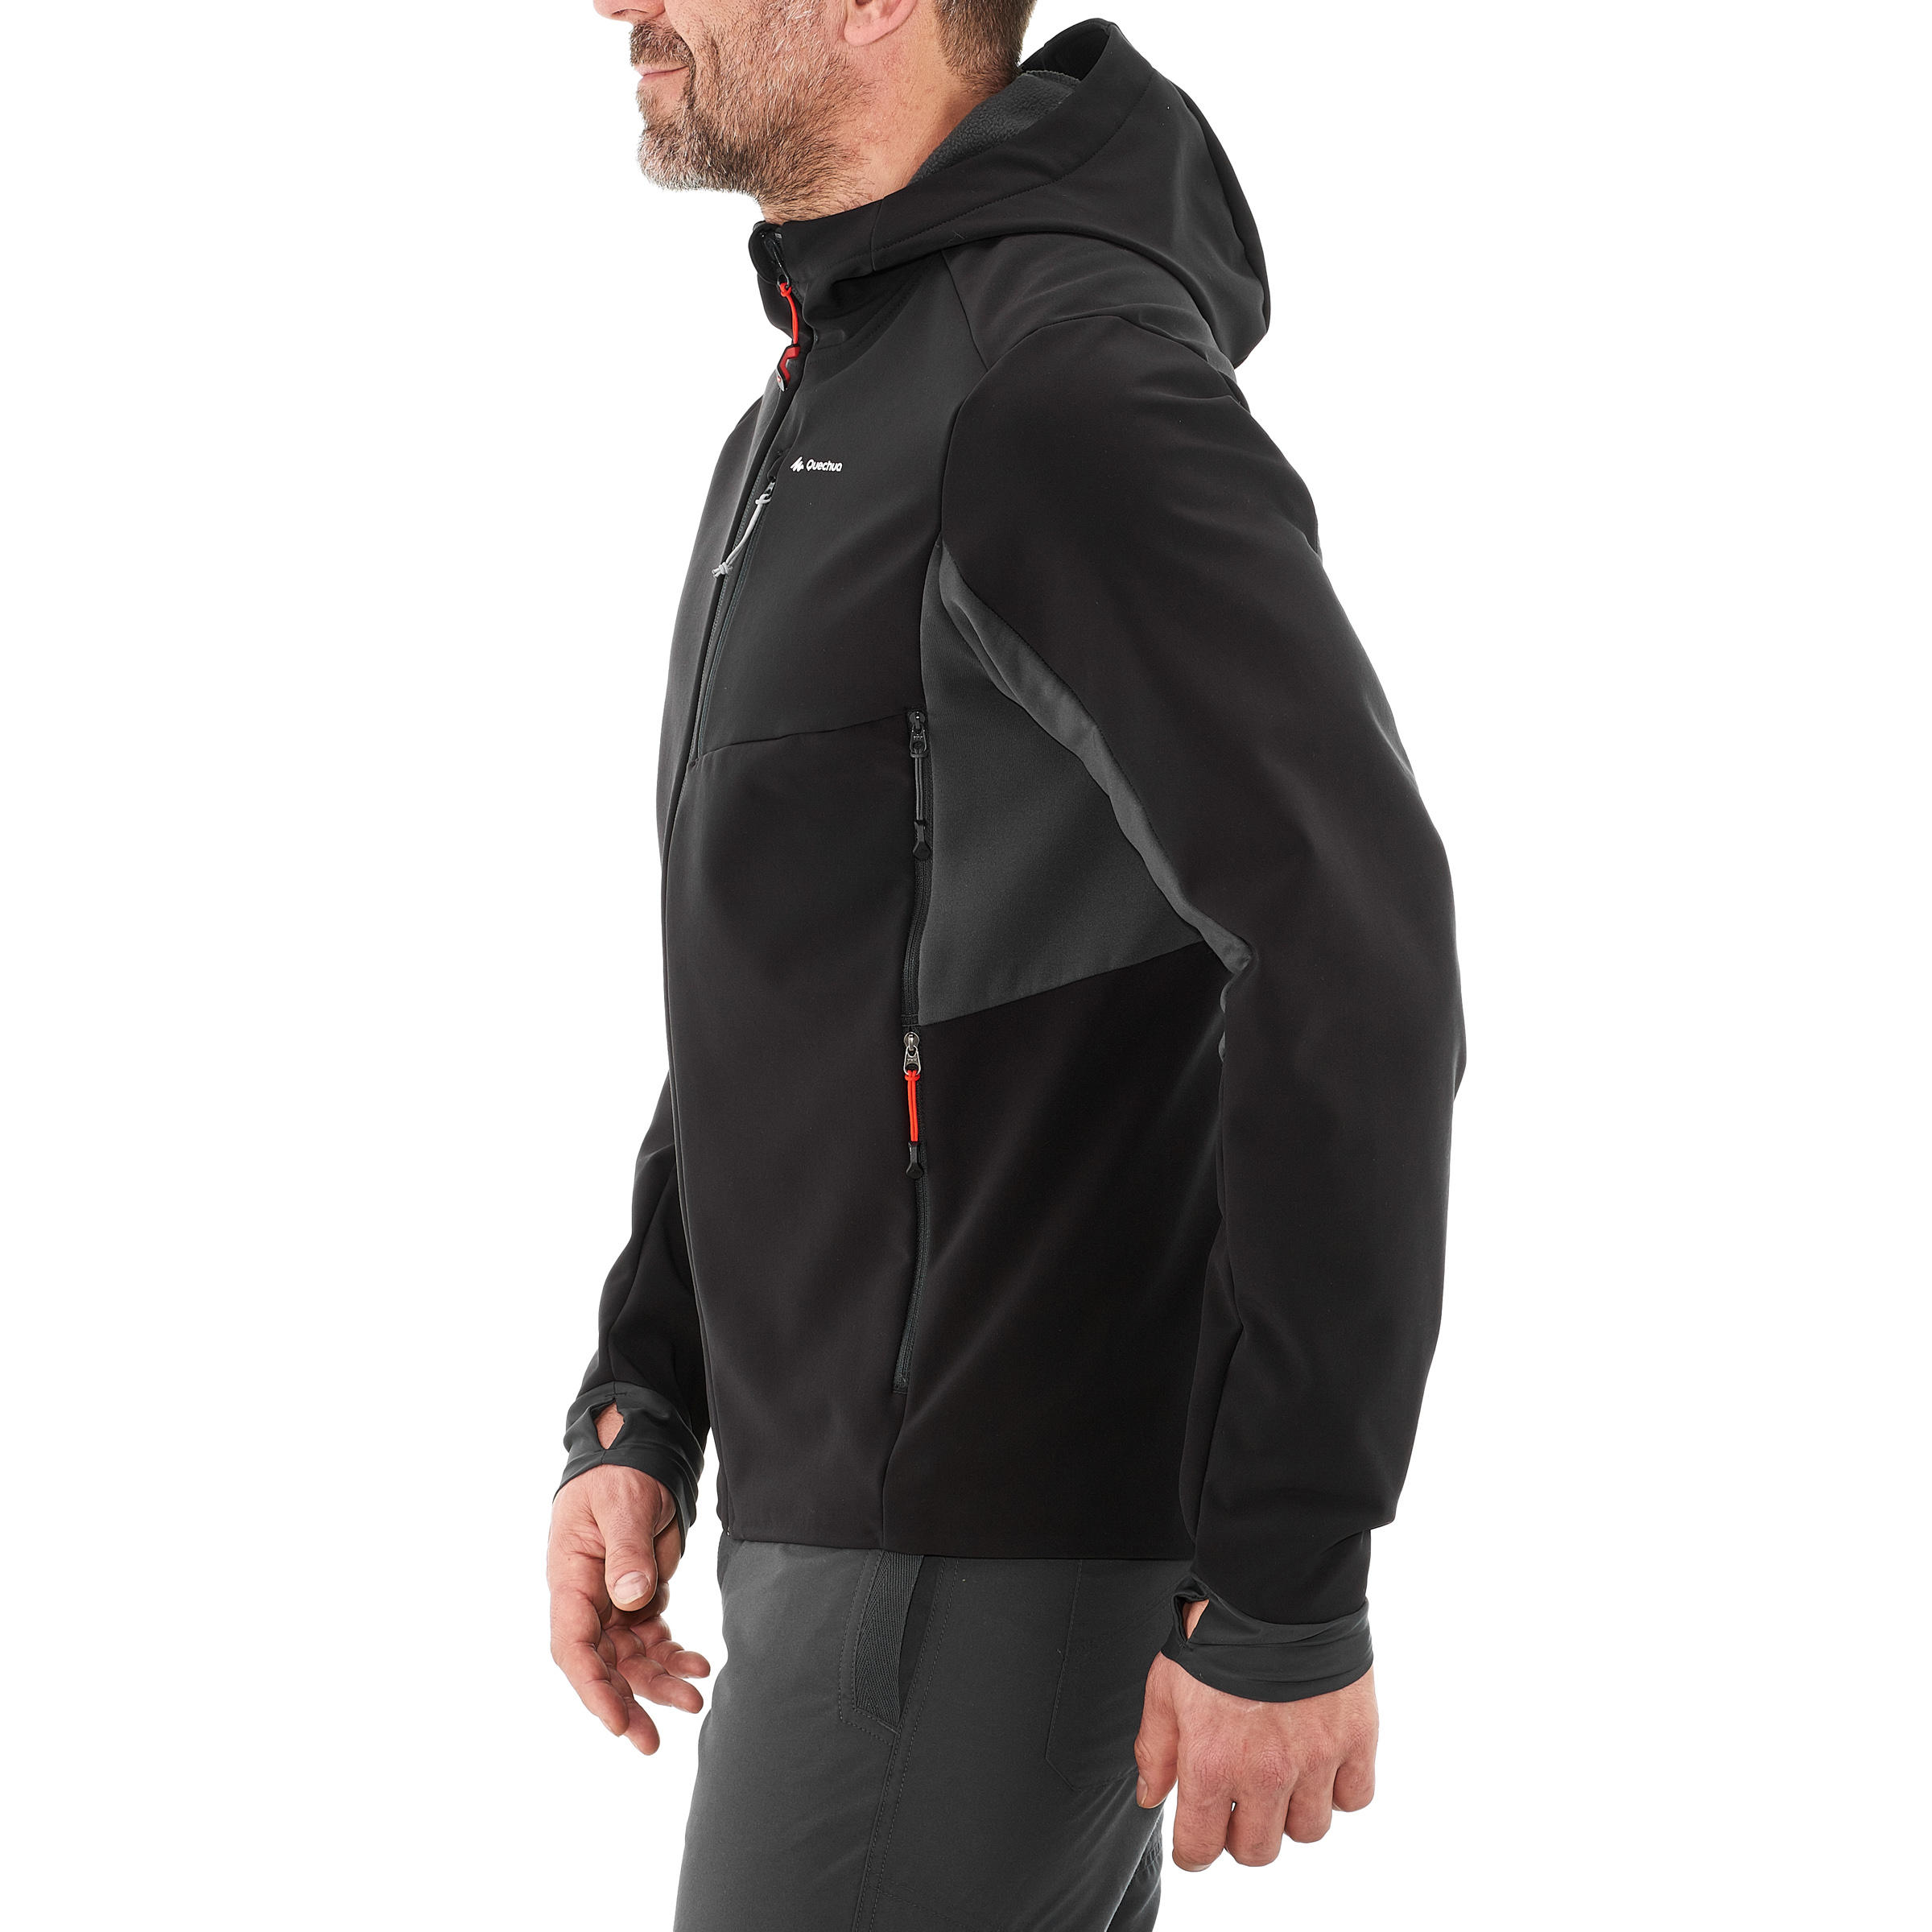 Men's TREK 900 softshell black trekking jacket